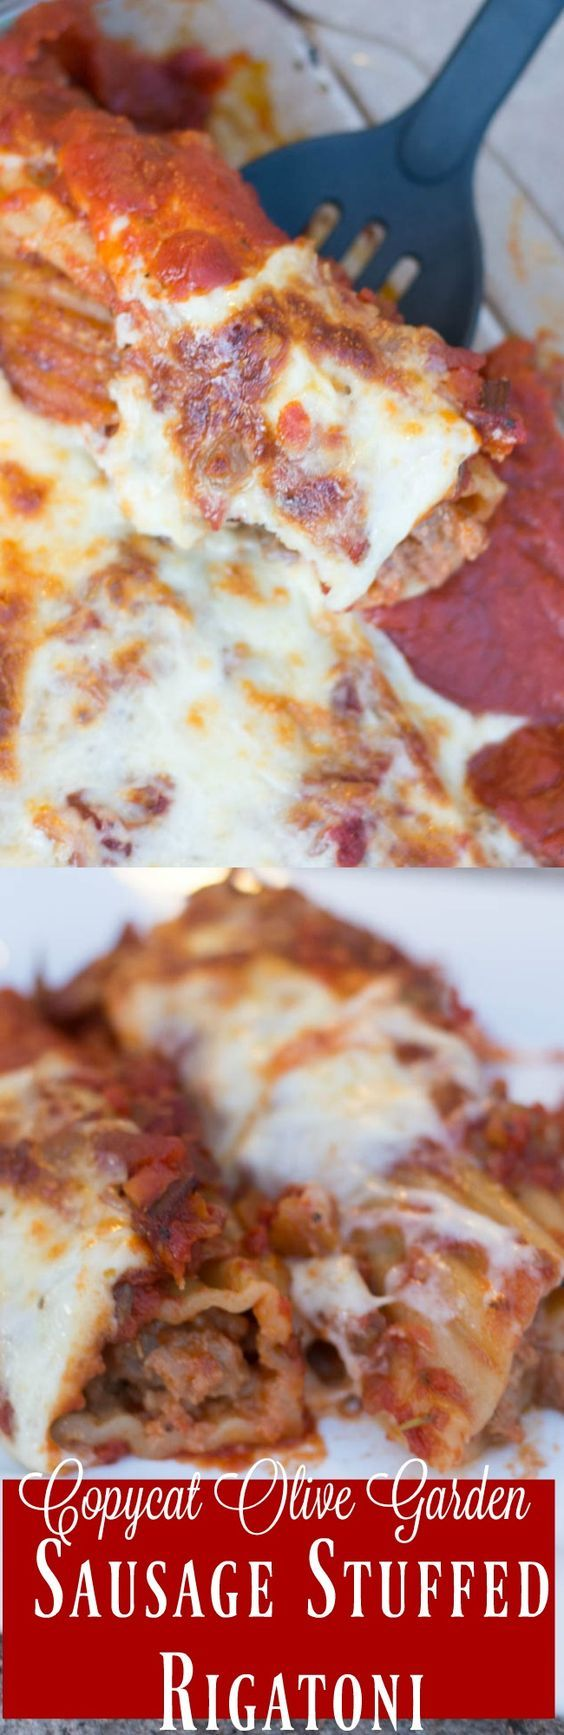 This is one of the best Olive Garden copycat recipes out there - Olive Garden giant sausage stuffed rigatoni recipe. It's an easy copycat restaurant recipe that is perfect baked recipe for dinner.